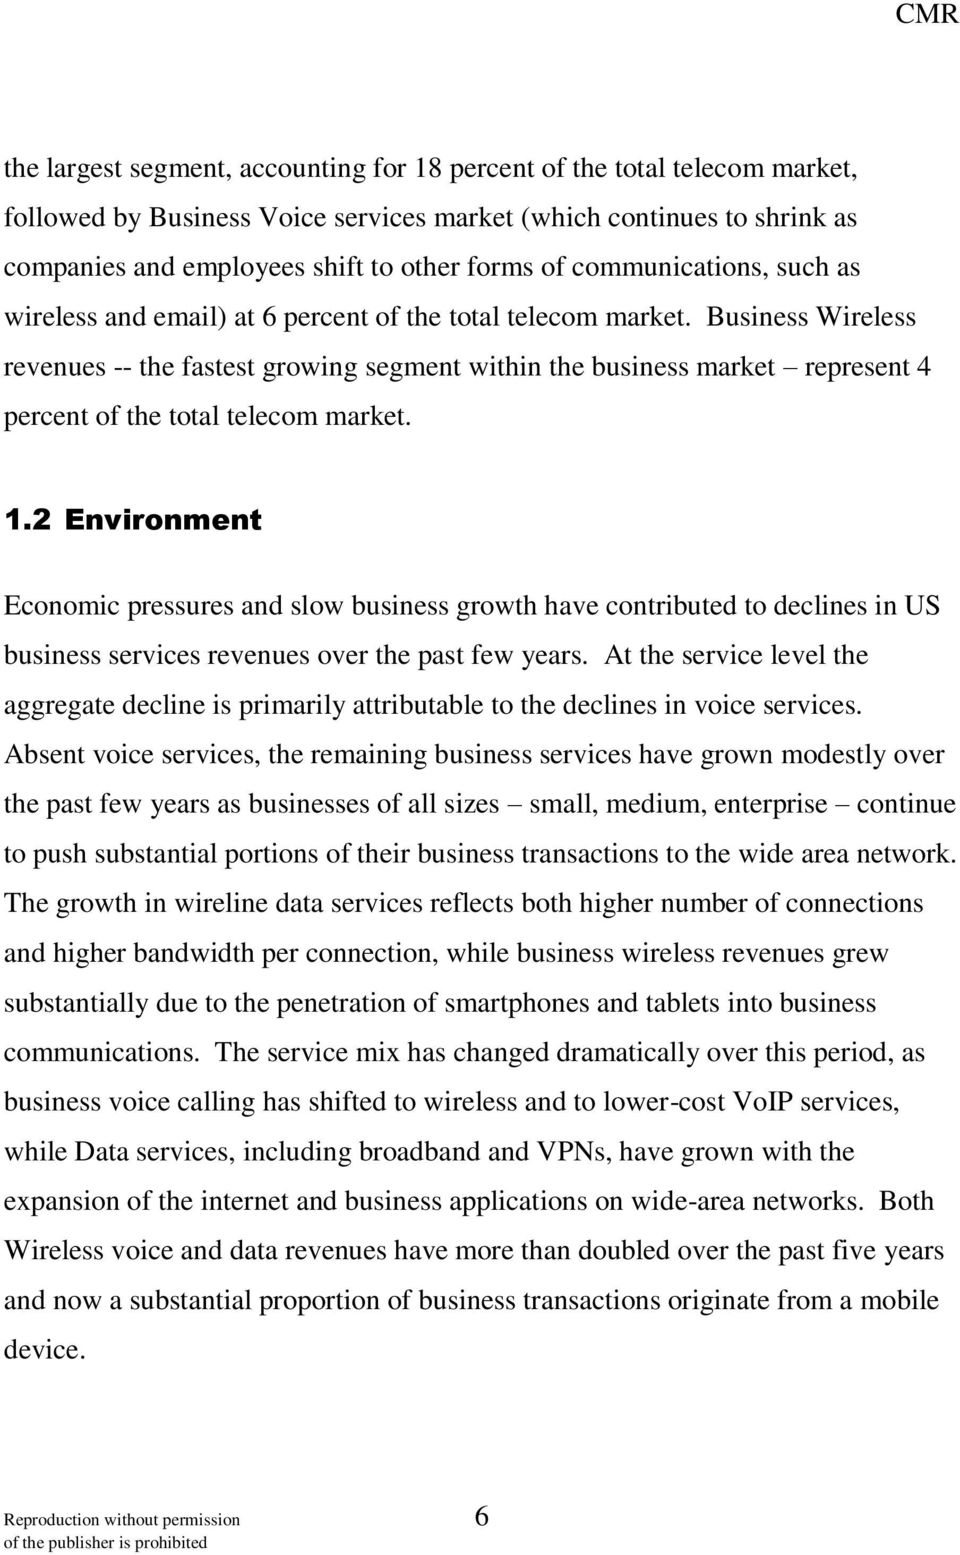 Business Wireless revenues -- the fastest growing segment within the business market represent 4 percent of the total telecom market. 1.